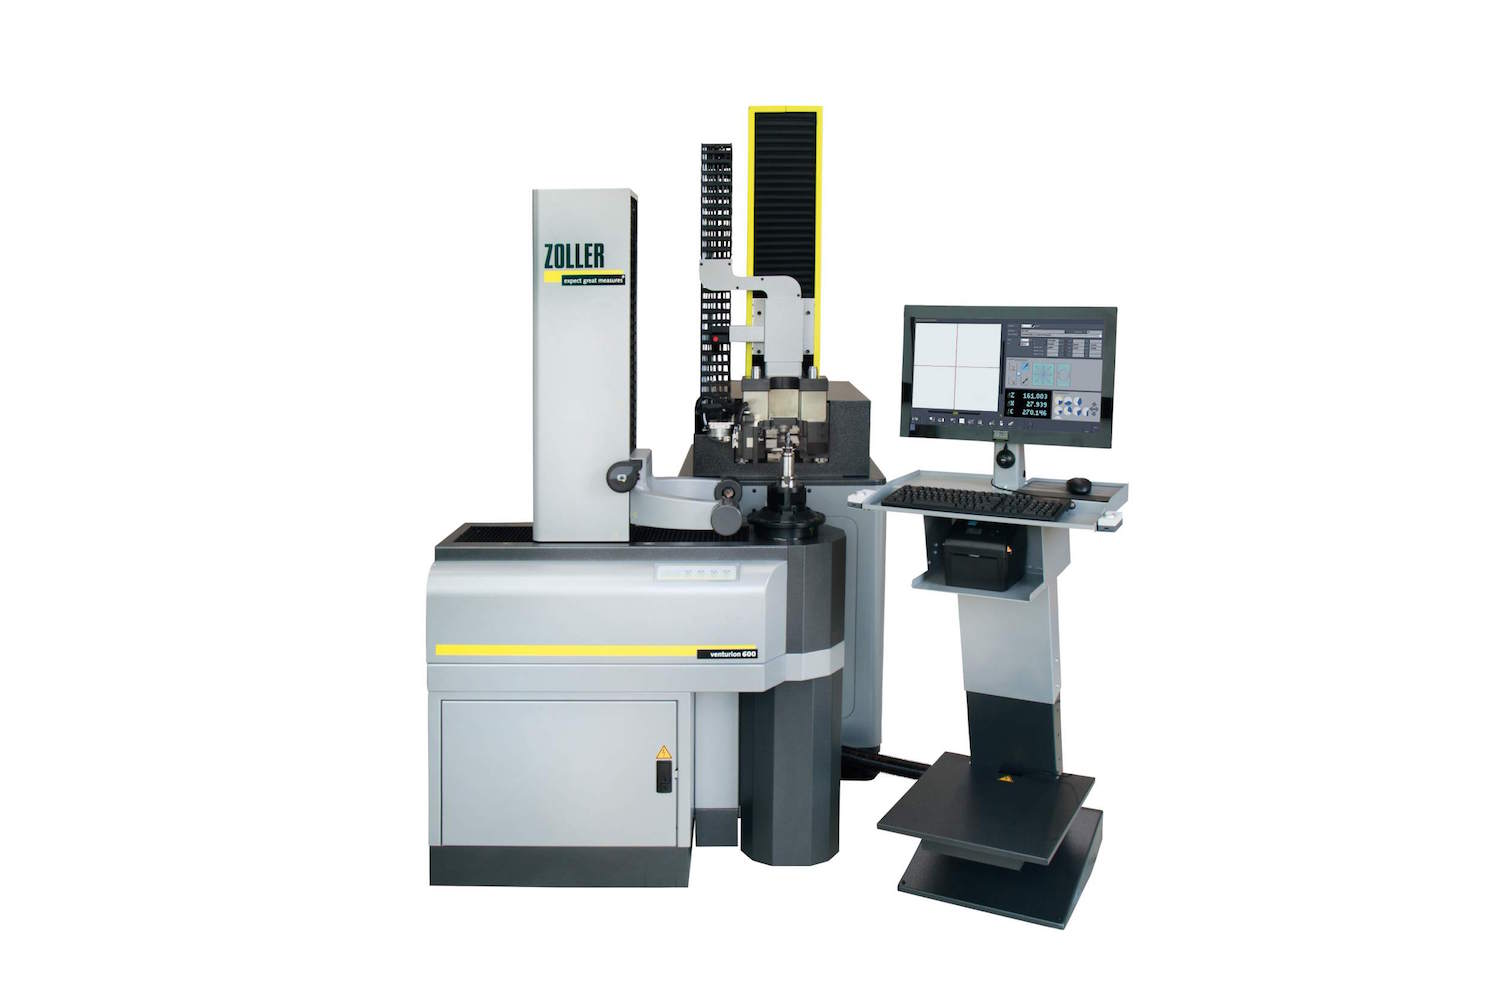 Rego-Fix and Zoller developed the automated tool presetting and measuring system, Venturion 600